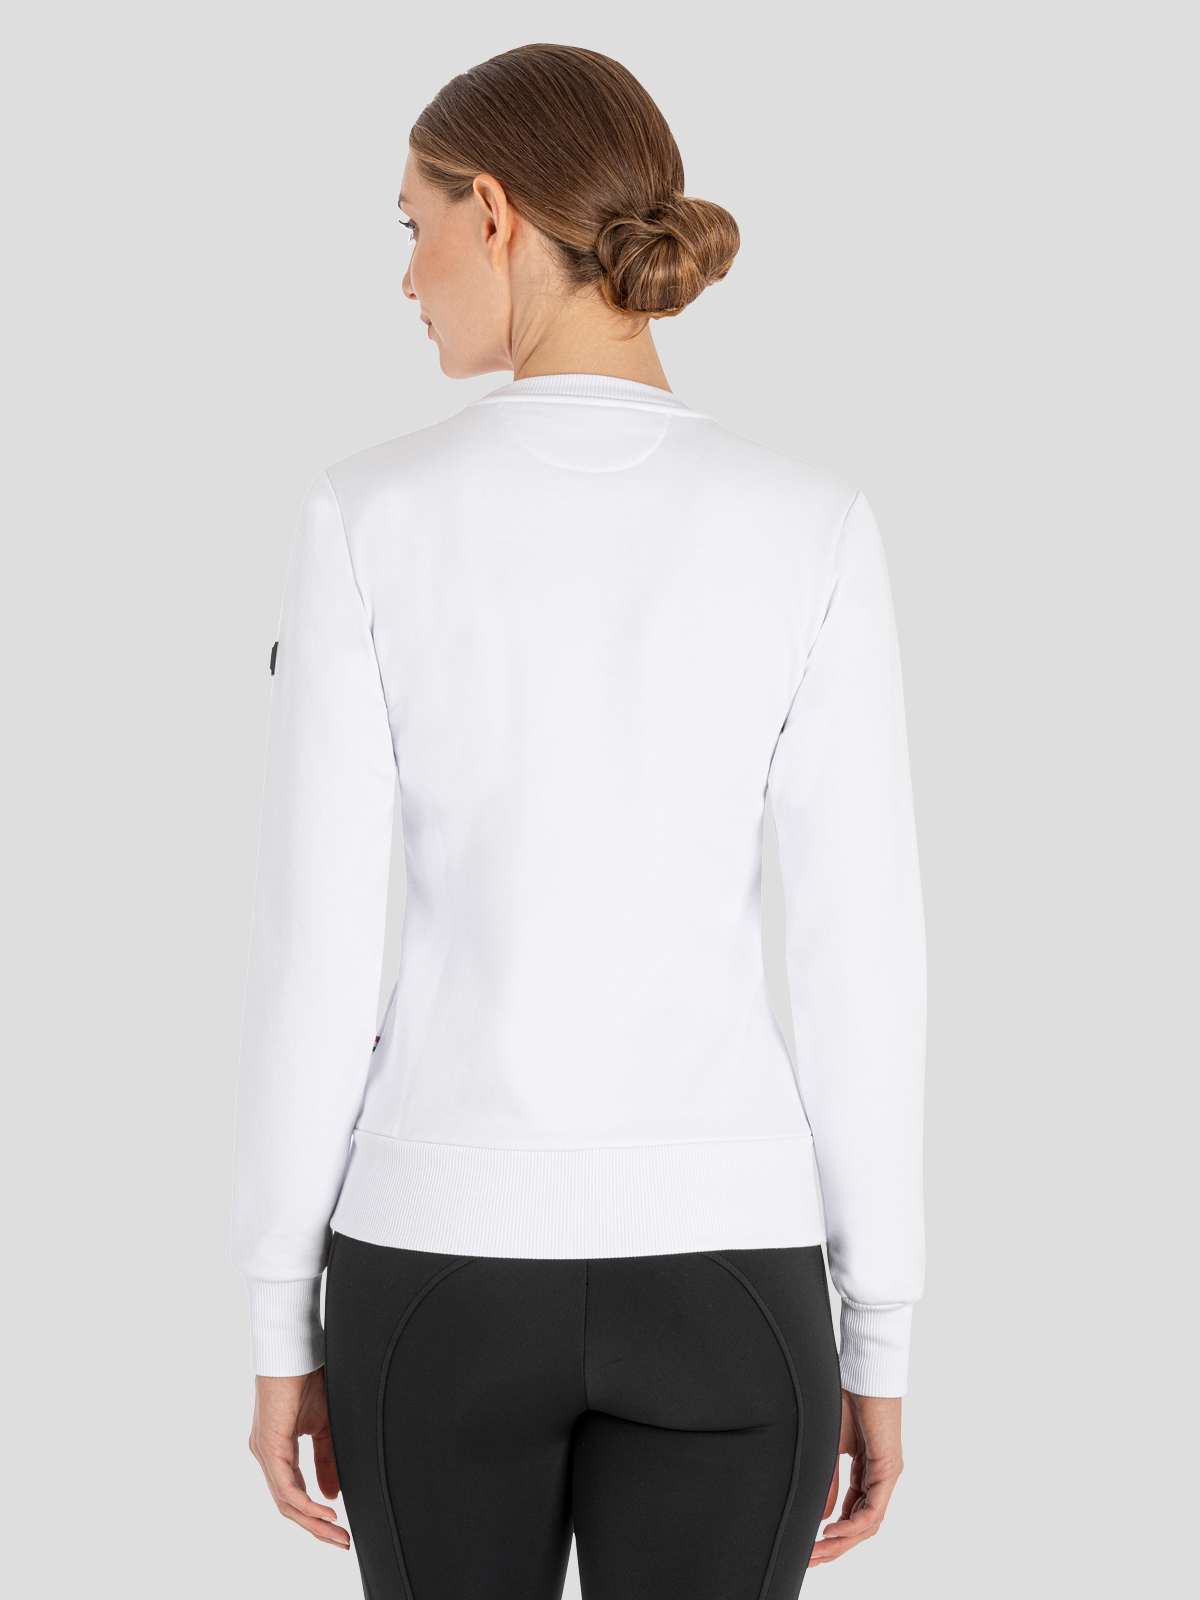 CarlaC Women's Crew with Embroidered Logo 2